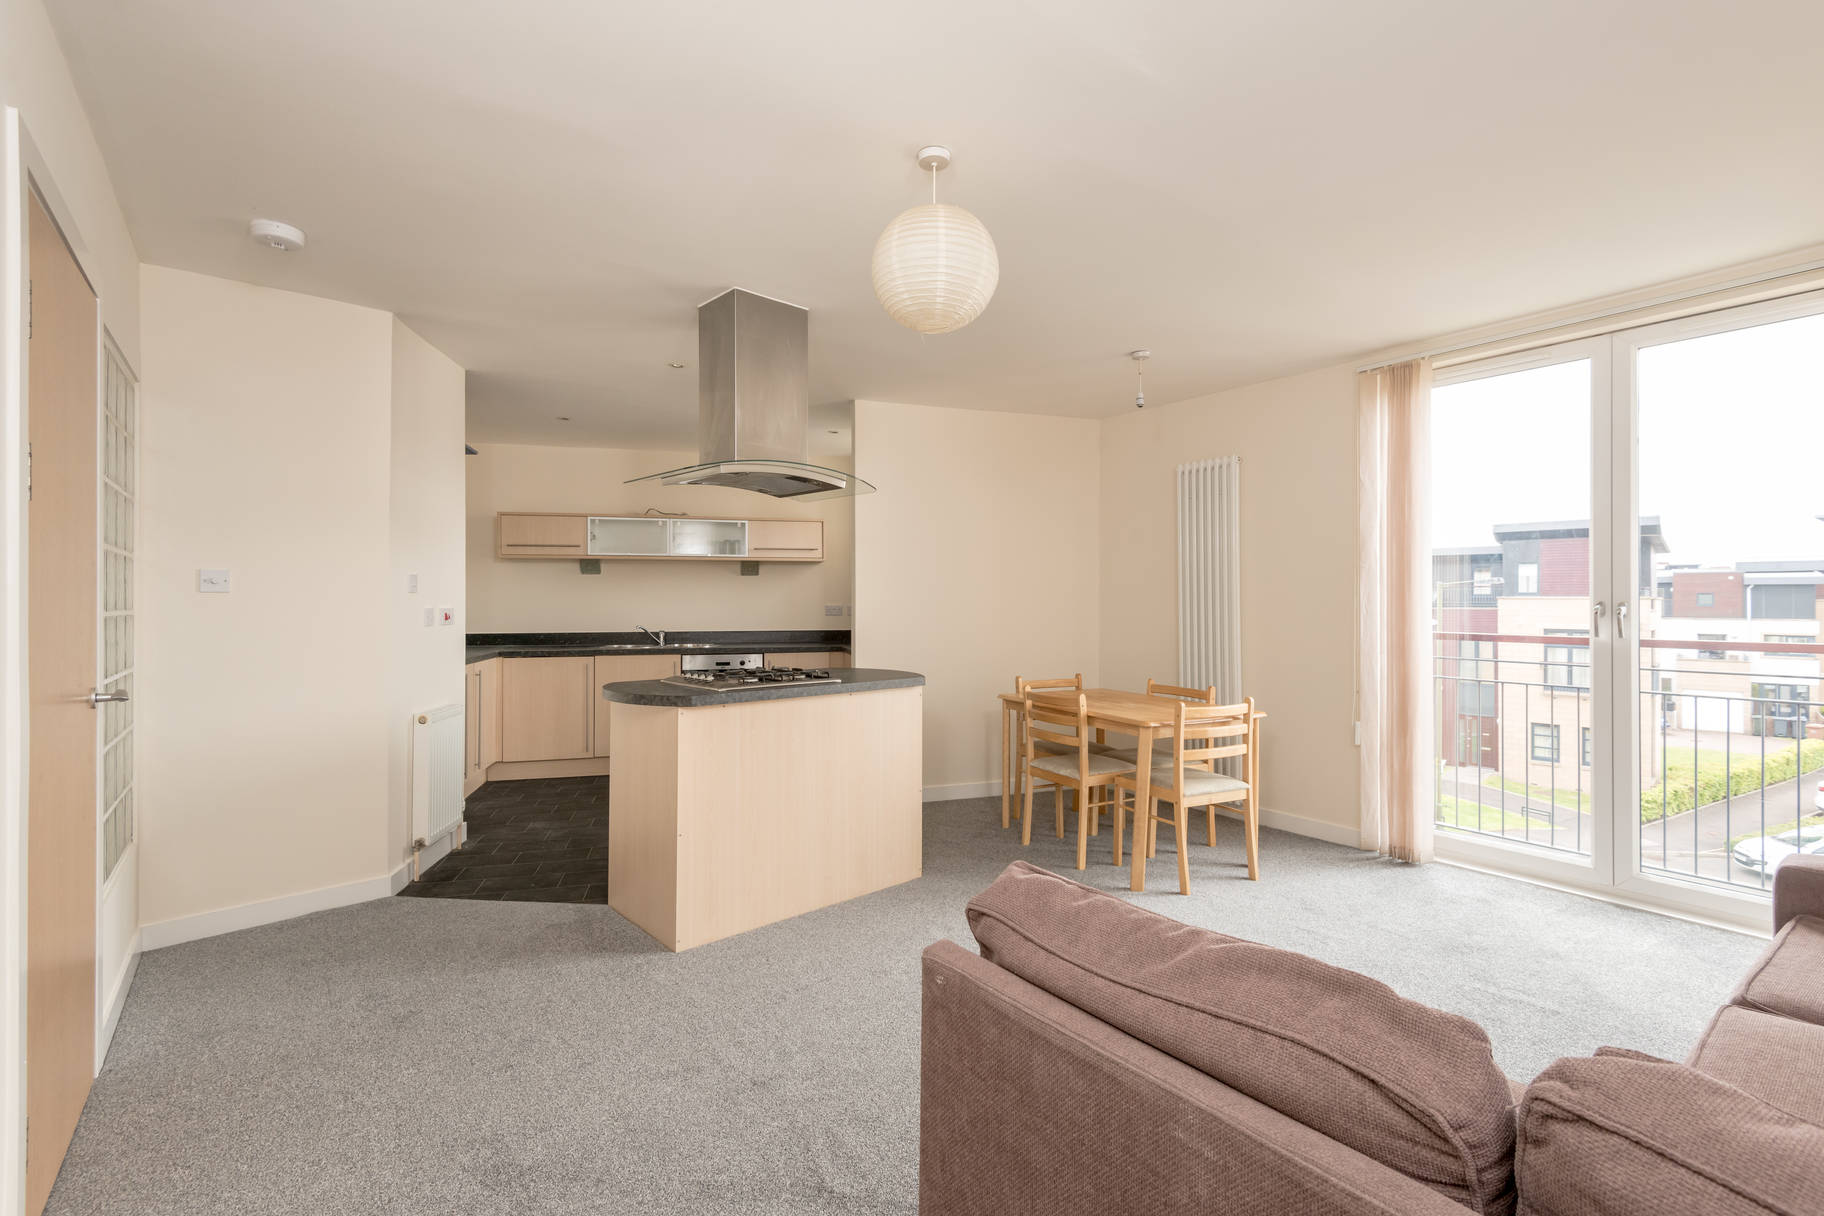 47/5 East Pilton Farm Wynd, Edinburgh, EH5 2GL